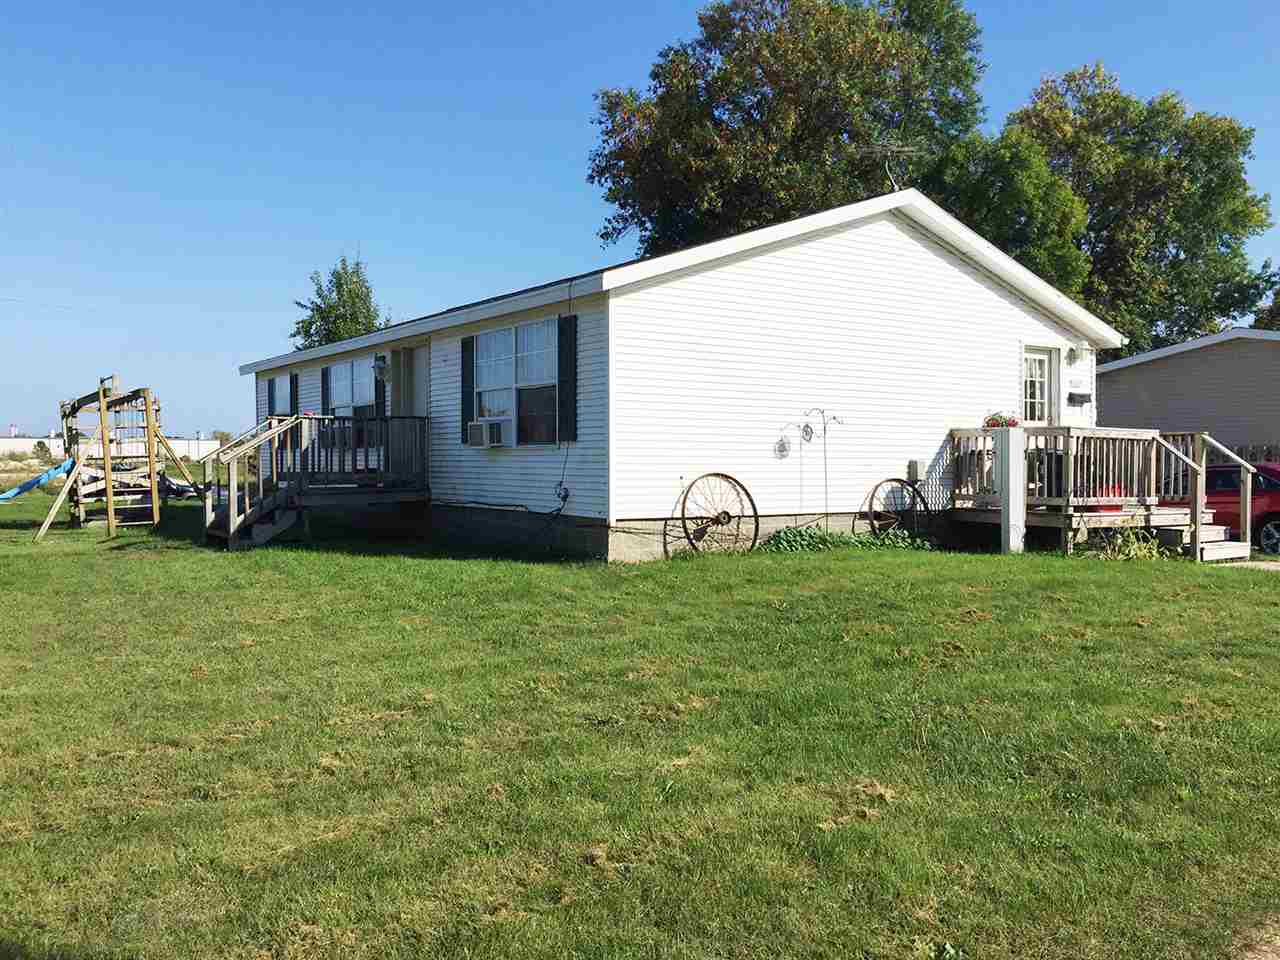 1301 31ST Street,MANITOWOC,Wisconsin 54220,3 Bedrooms Bedrooms,2 BathroomsBathrooms,Residential,31ST,50192251